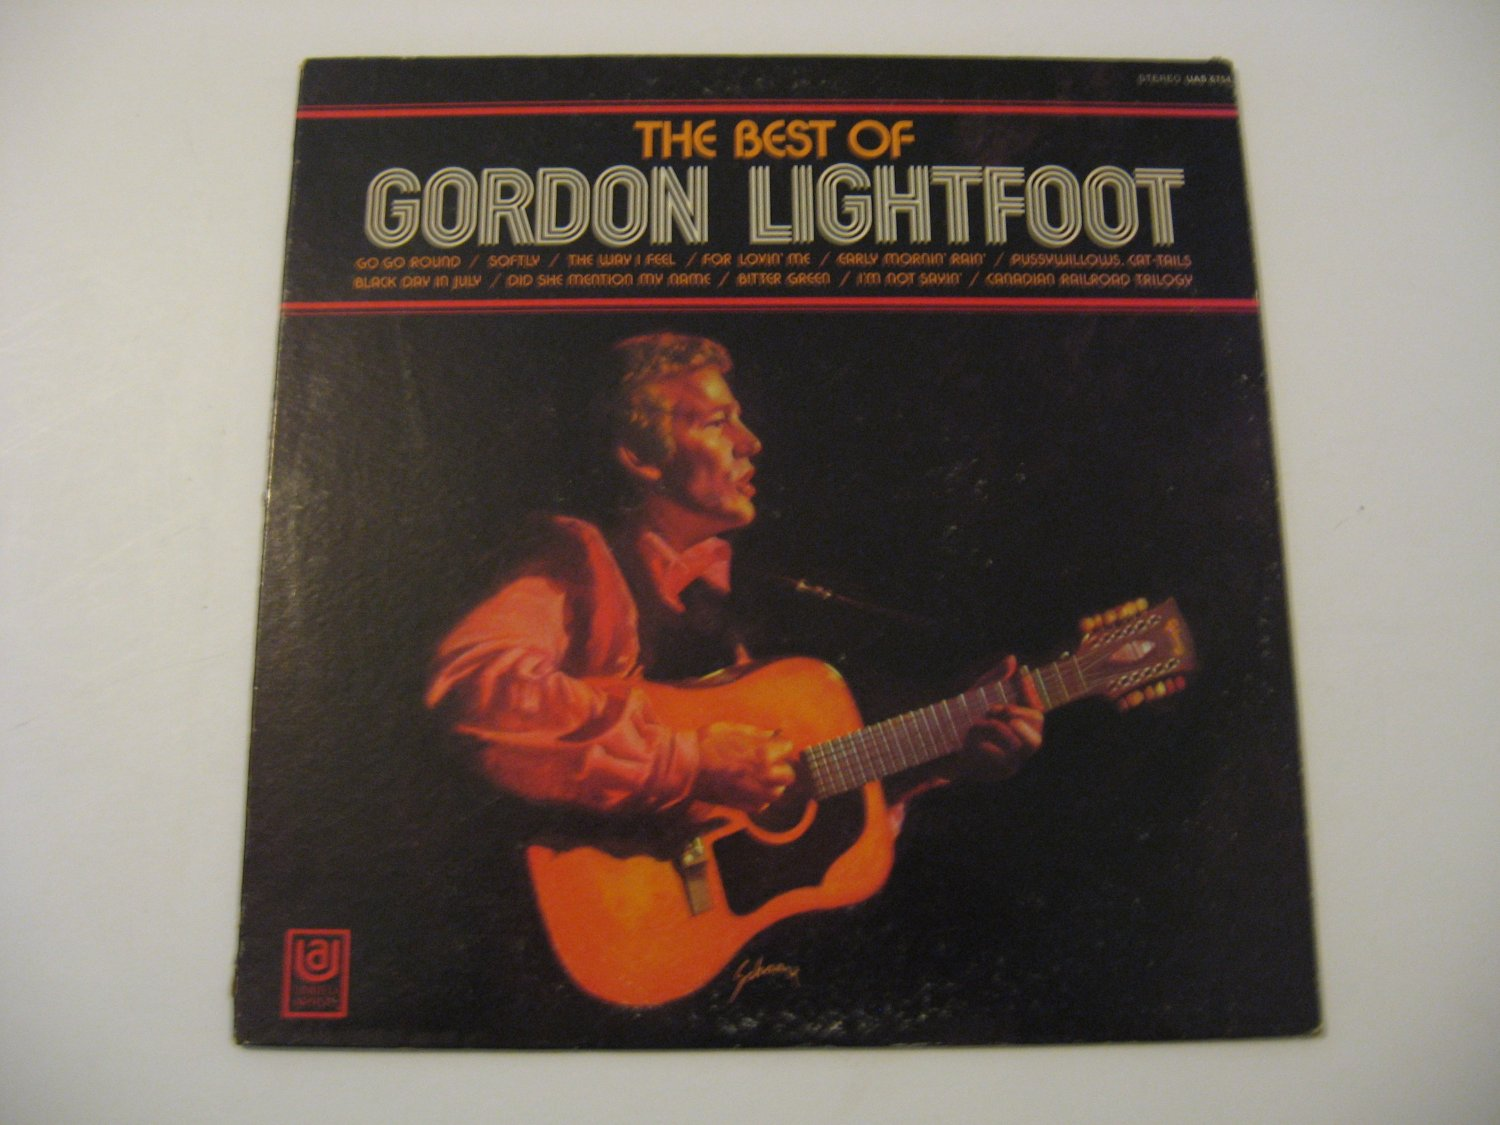 Gordon Lightfoot - The Best of Gordon Lightfoot - Circa 1970